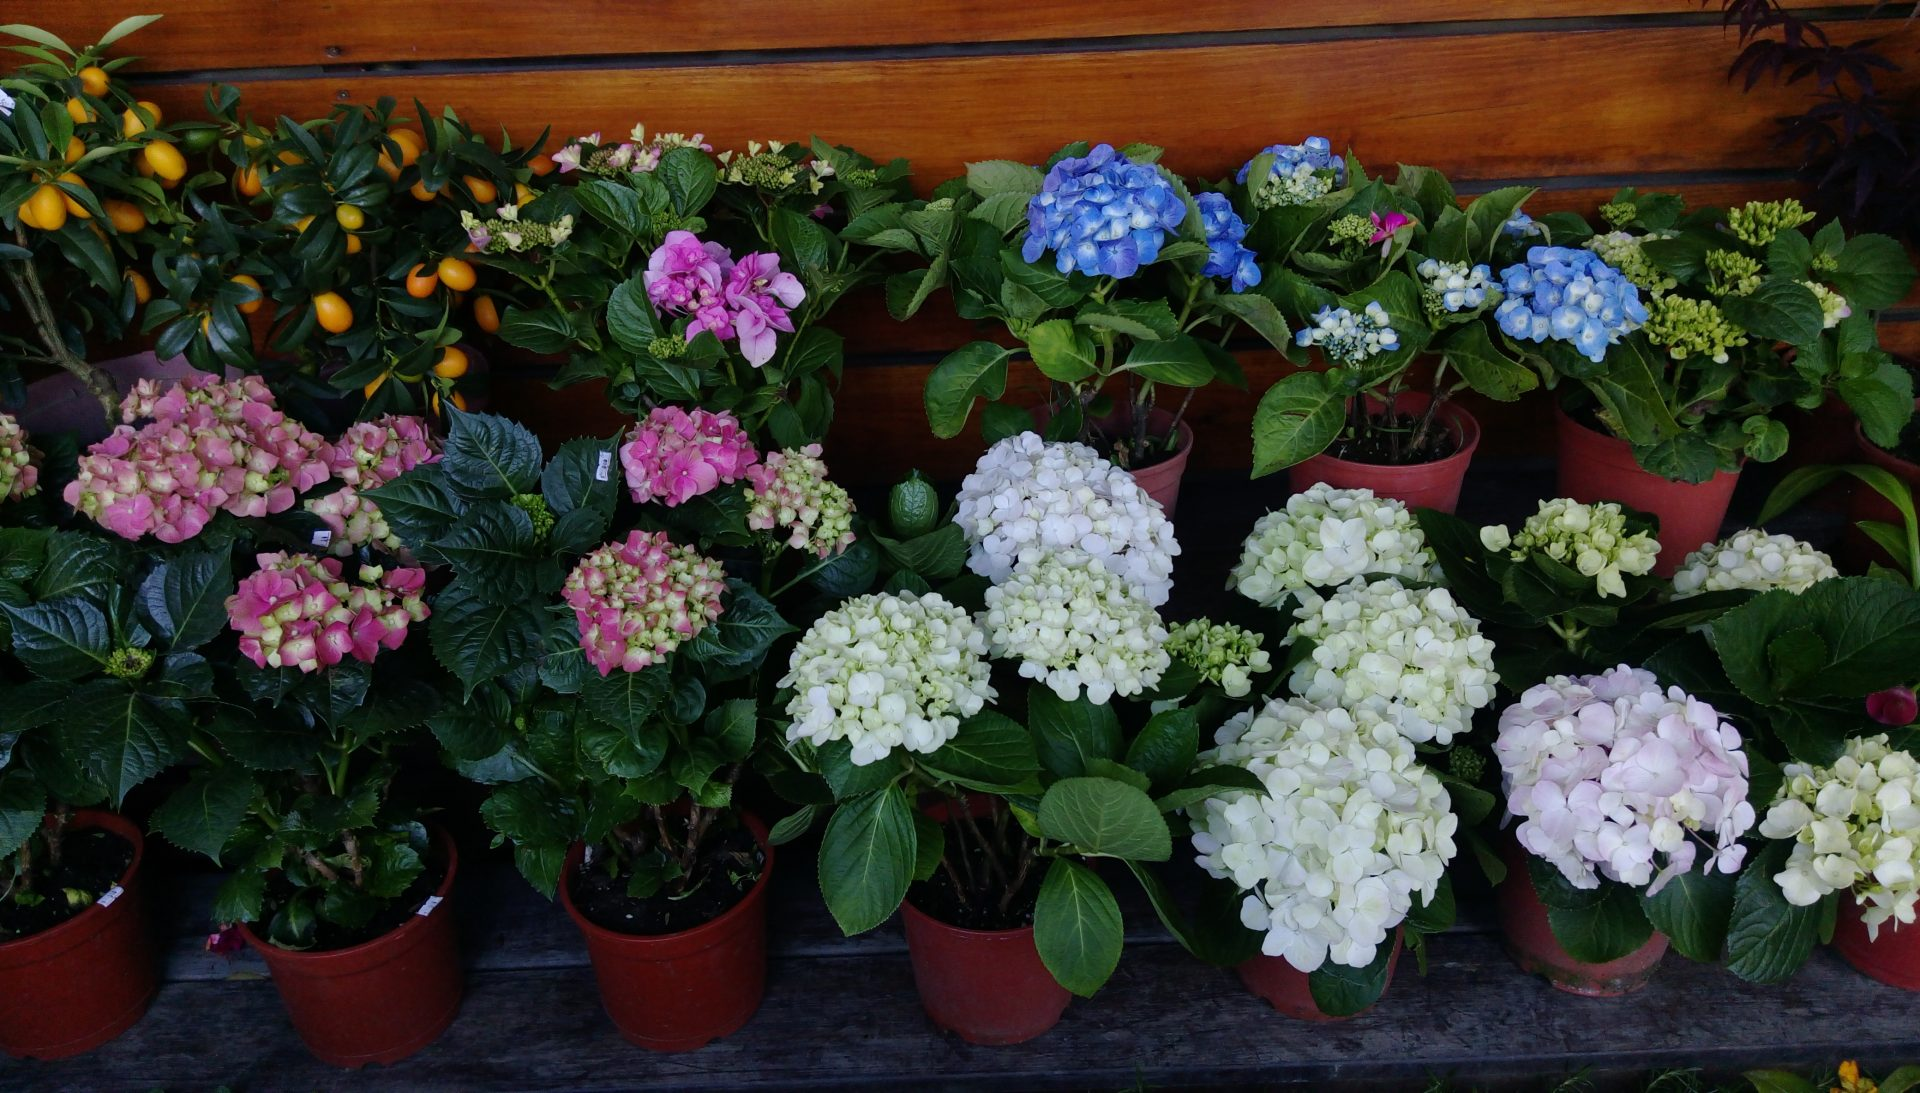 A variety of flower plants are sold at the shops in Hydrangea plants and other bonsai plants are sold at Zhuzihu in Taiwan's Yangmingshan'. (Image: Juliet Fu/ Vision Times)